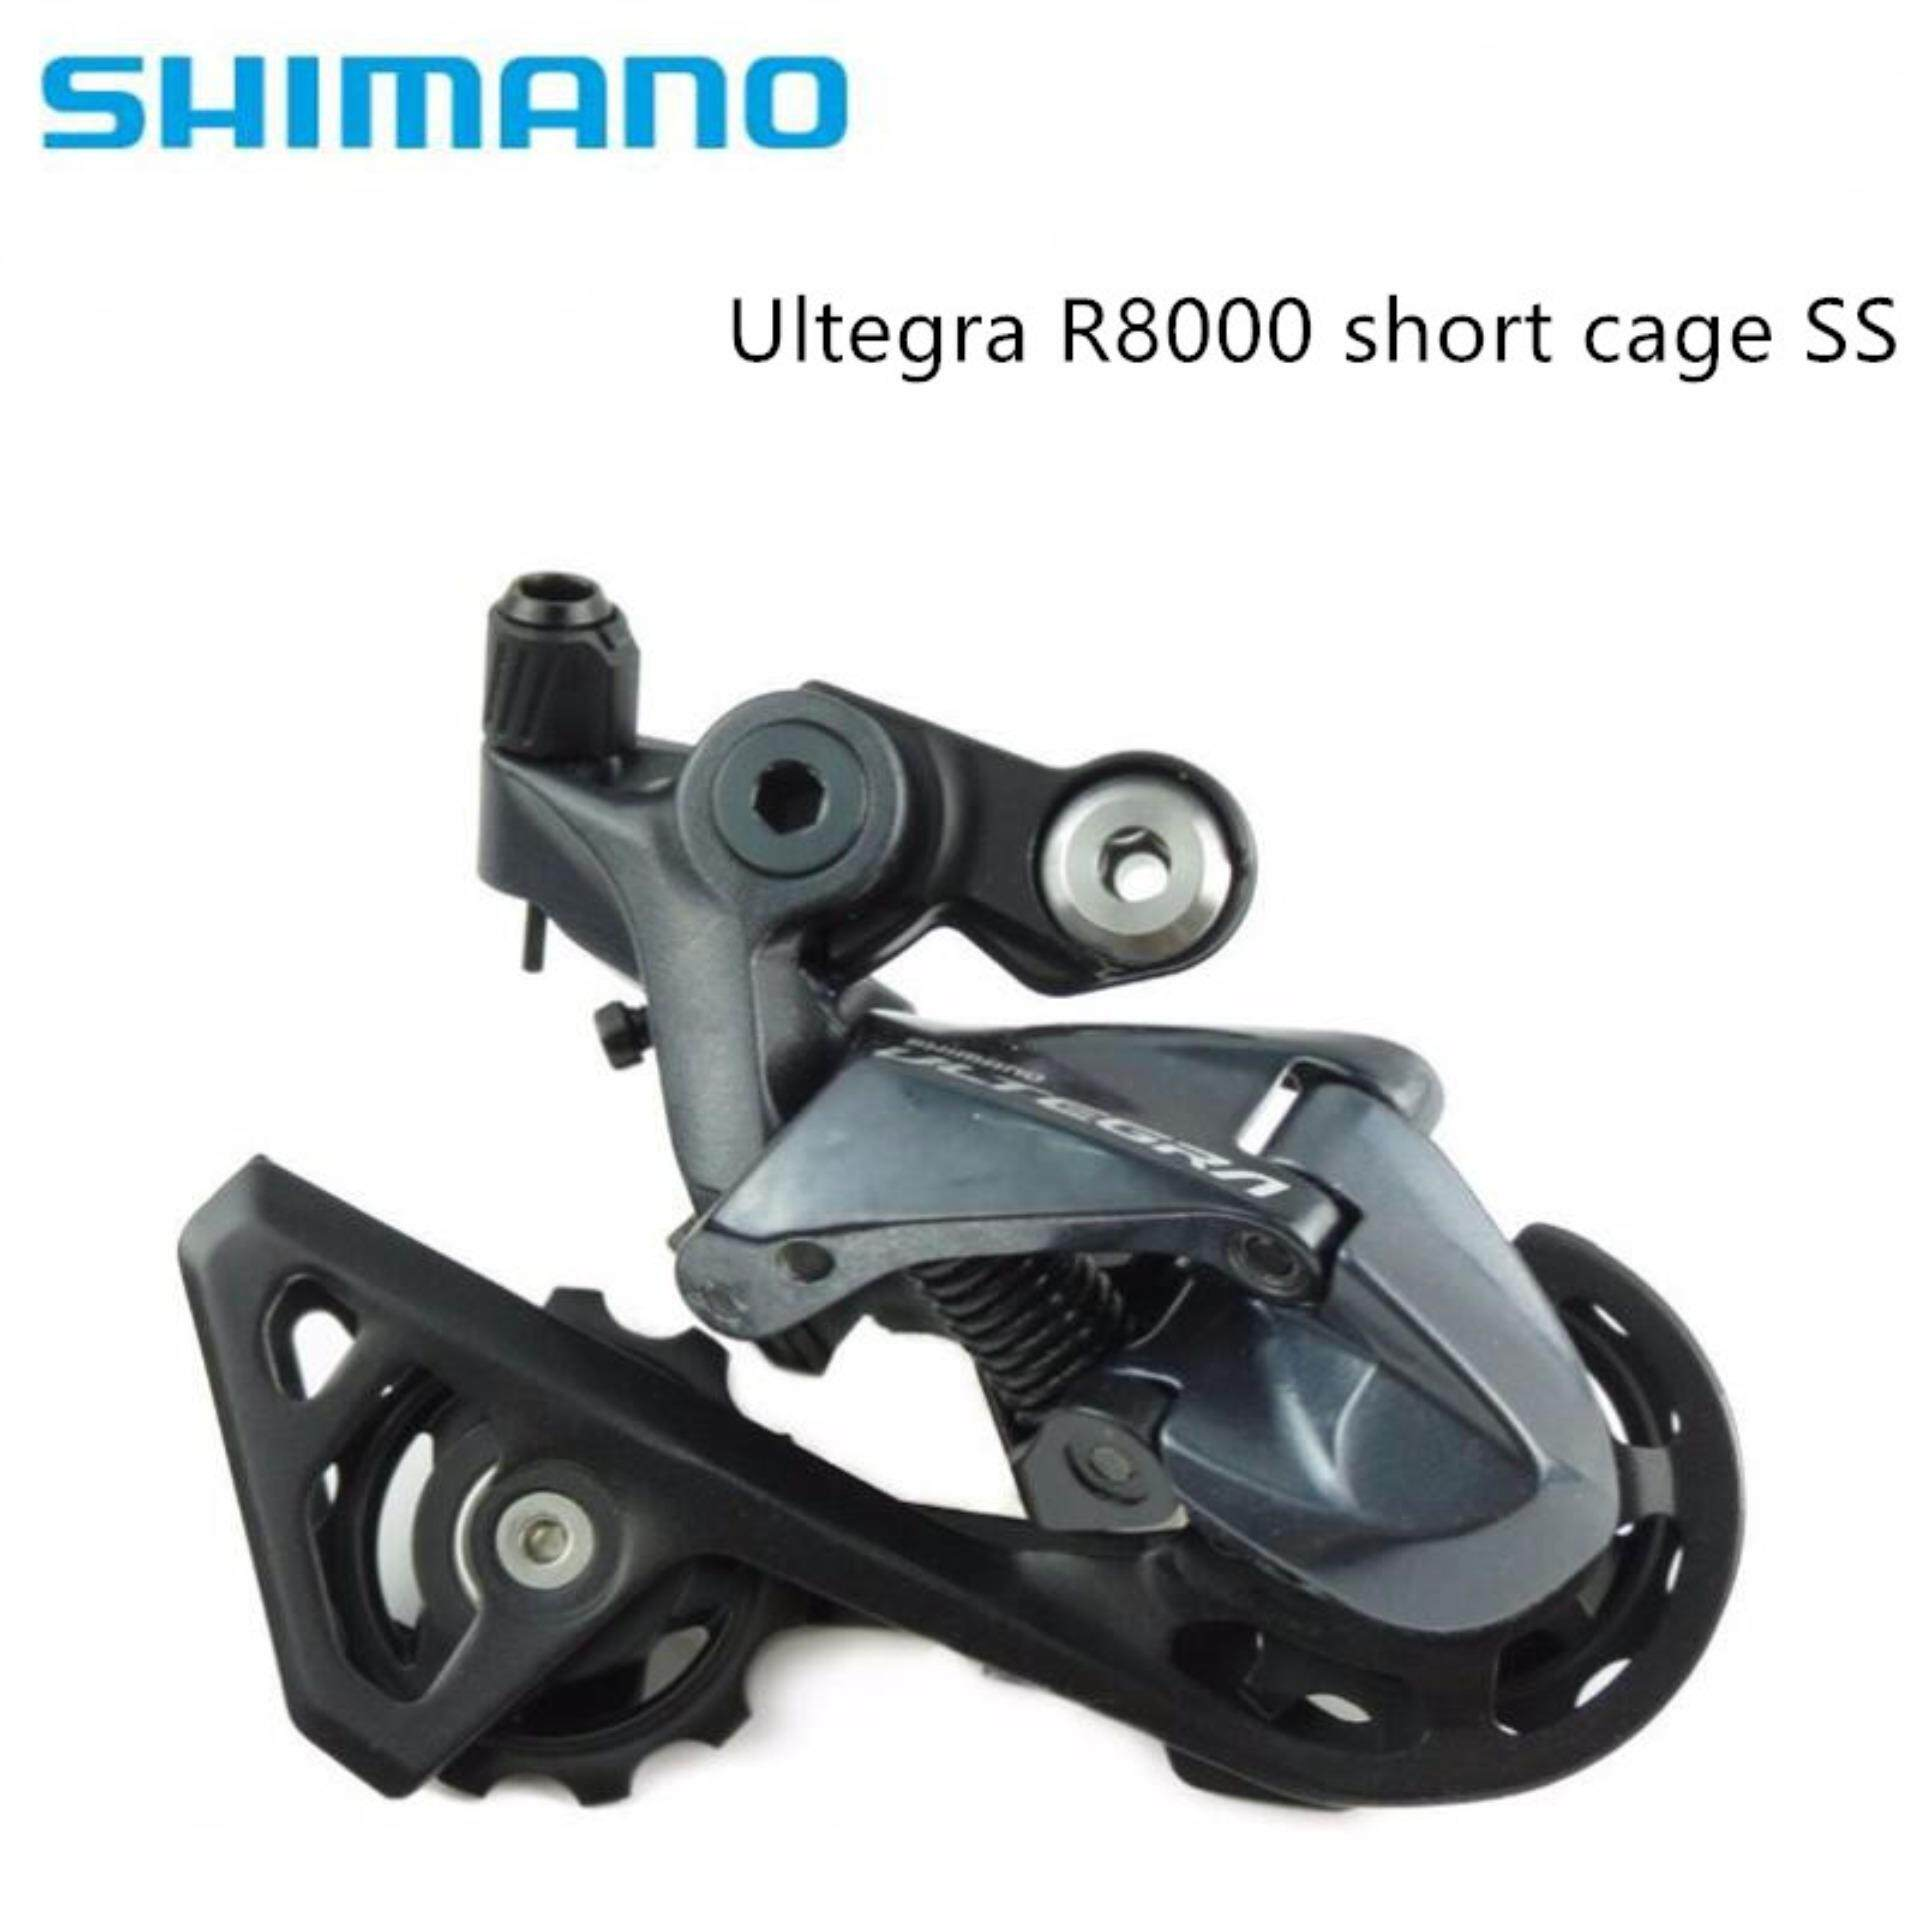 Great Road Bikes Equipment For The Best Prices In Malaysia Bicycle Back Safety Light Circuit Shimano Ultegra R8000 Ss 11 Speed Short Cage Bike Rear Derailleur